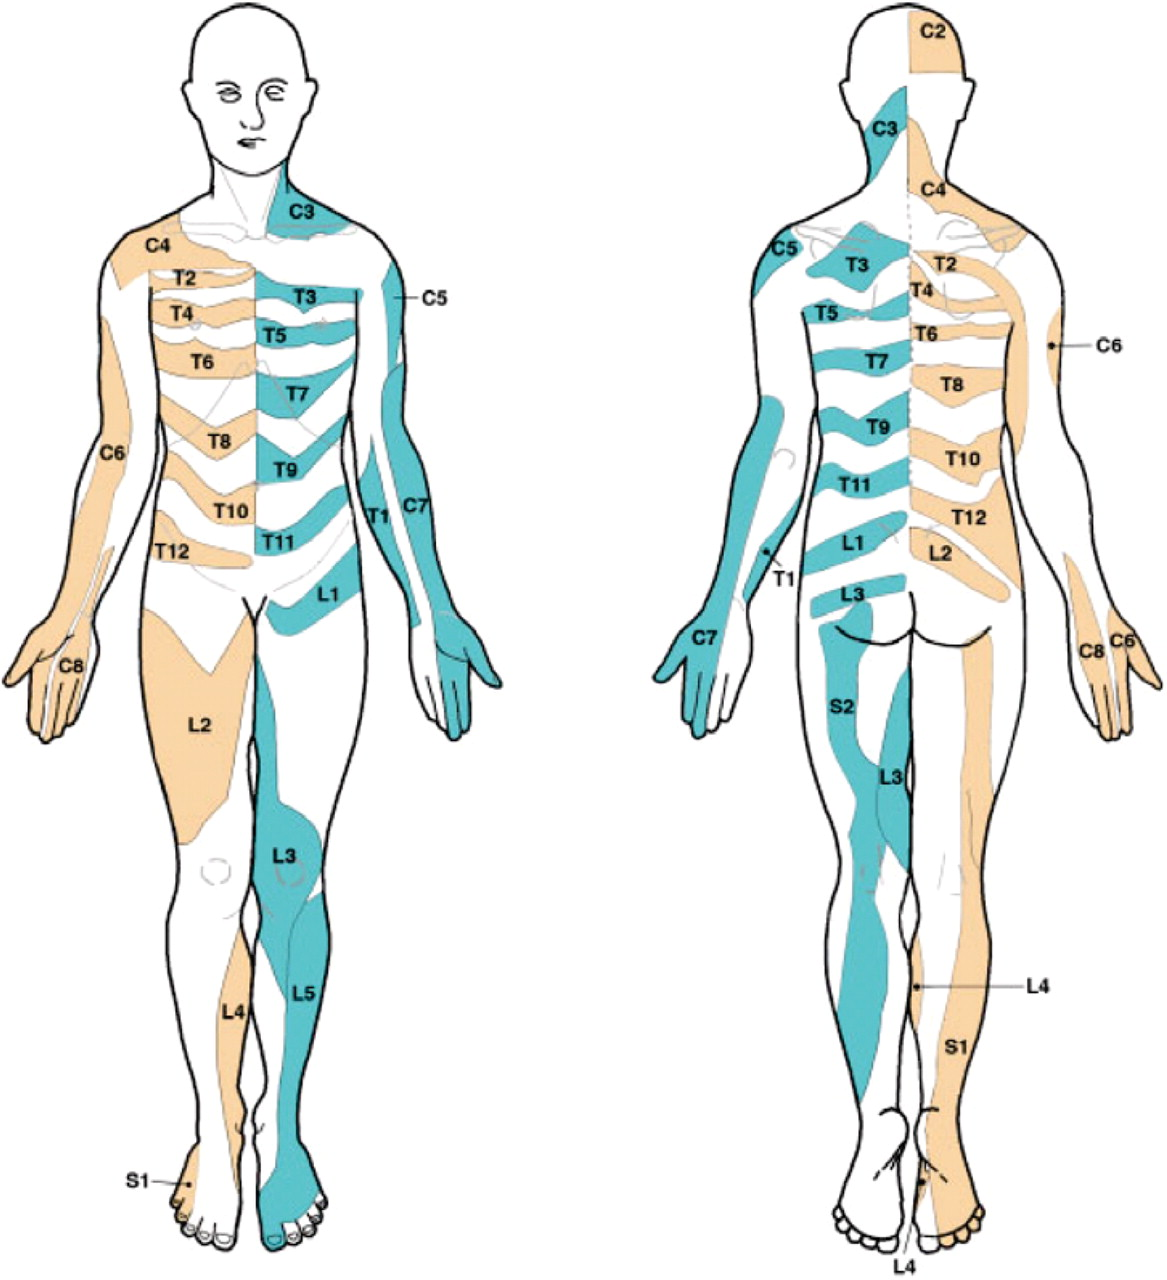 Dermatome Map http://www.fisiobrain.com/web/2011/conflicting-dermatome-maps-educational-and-clinical-implications